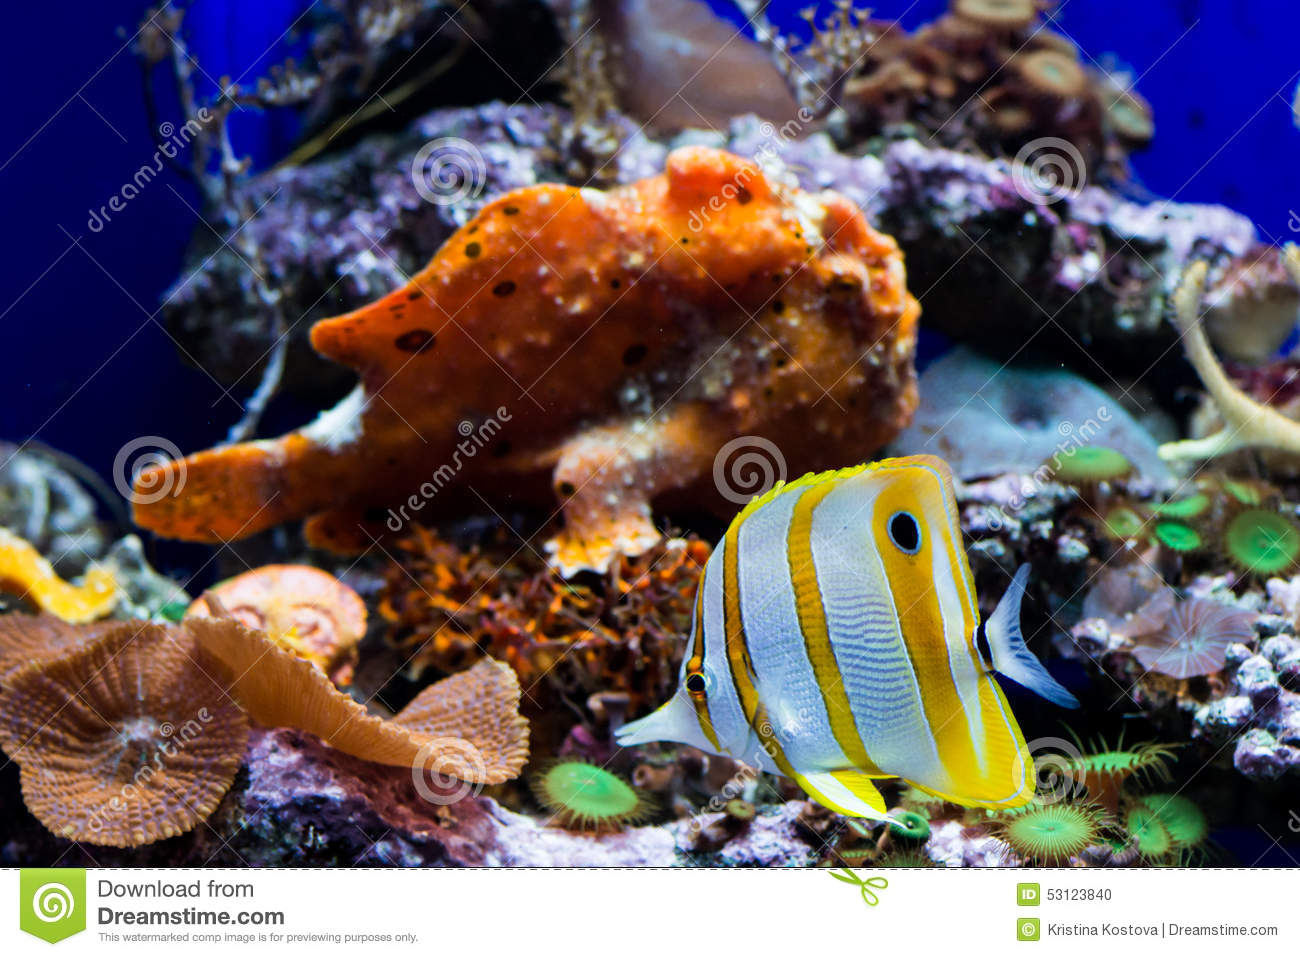 Info on striped butterfly fish sorry, does